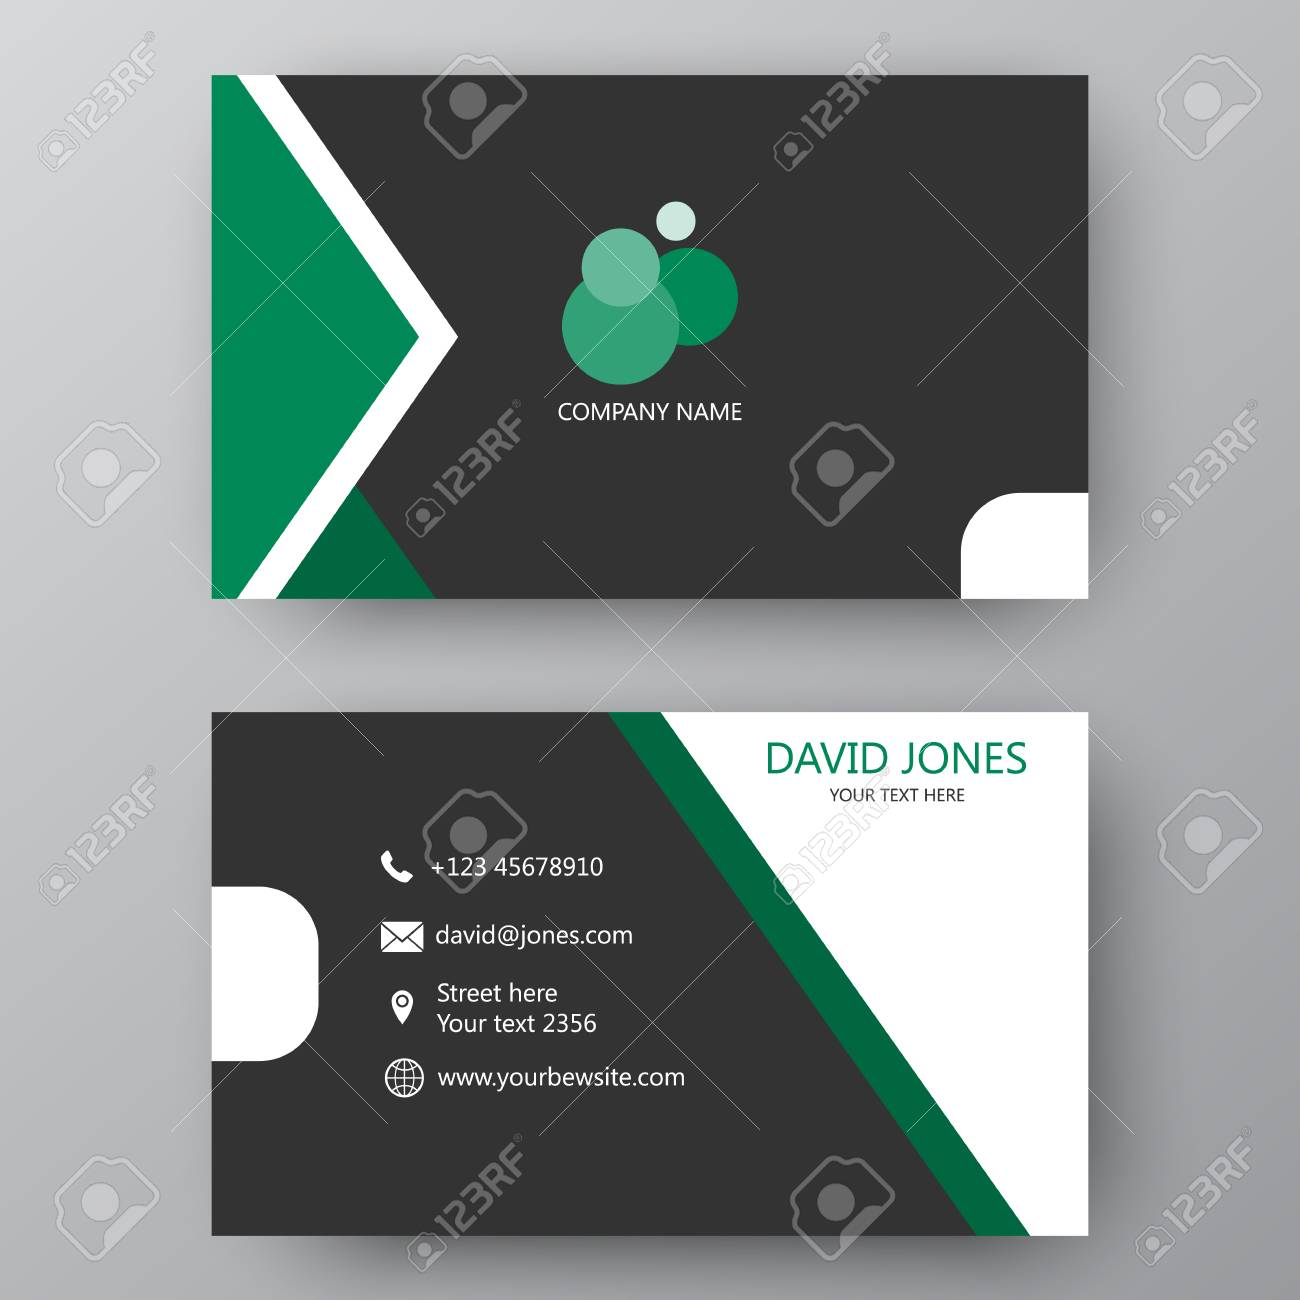 Vector business card template visiting card for business and vector vector business card template visiting card for business and personal use modern presentation card with company logo vector illustration design reheart Choice Image